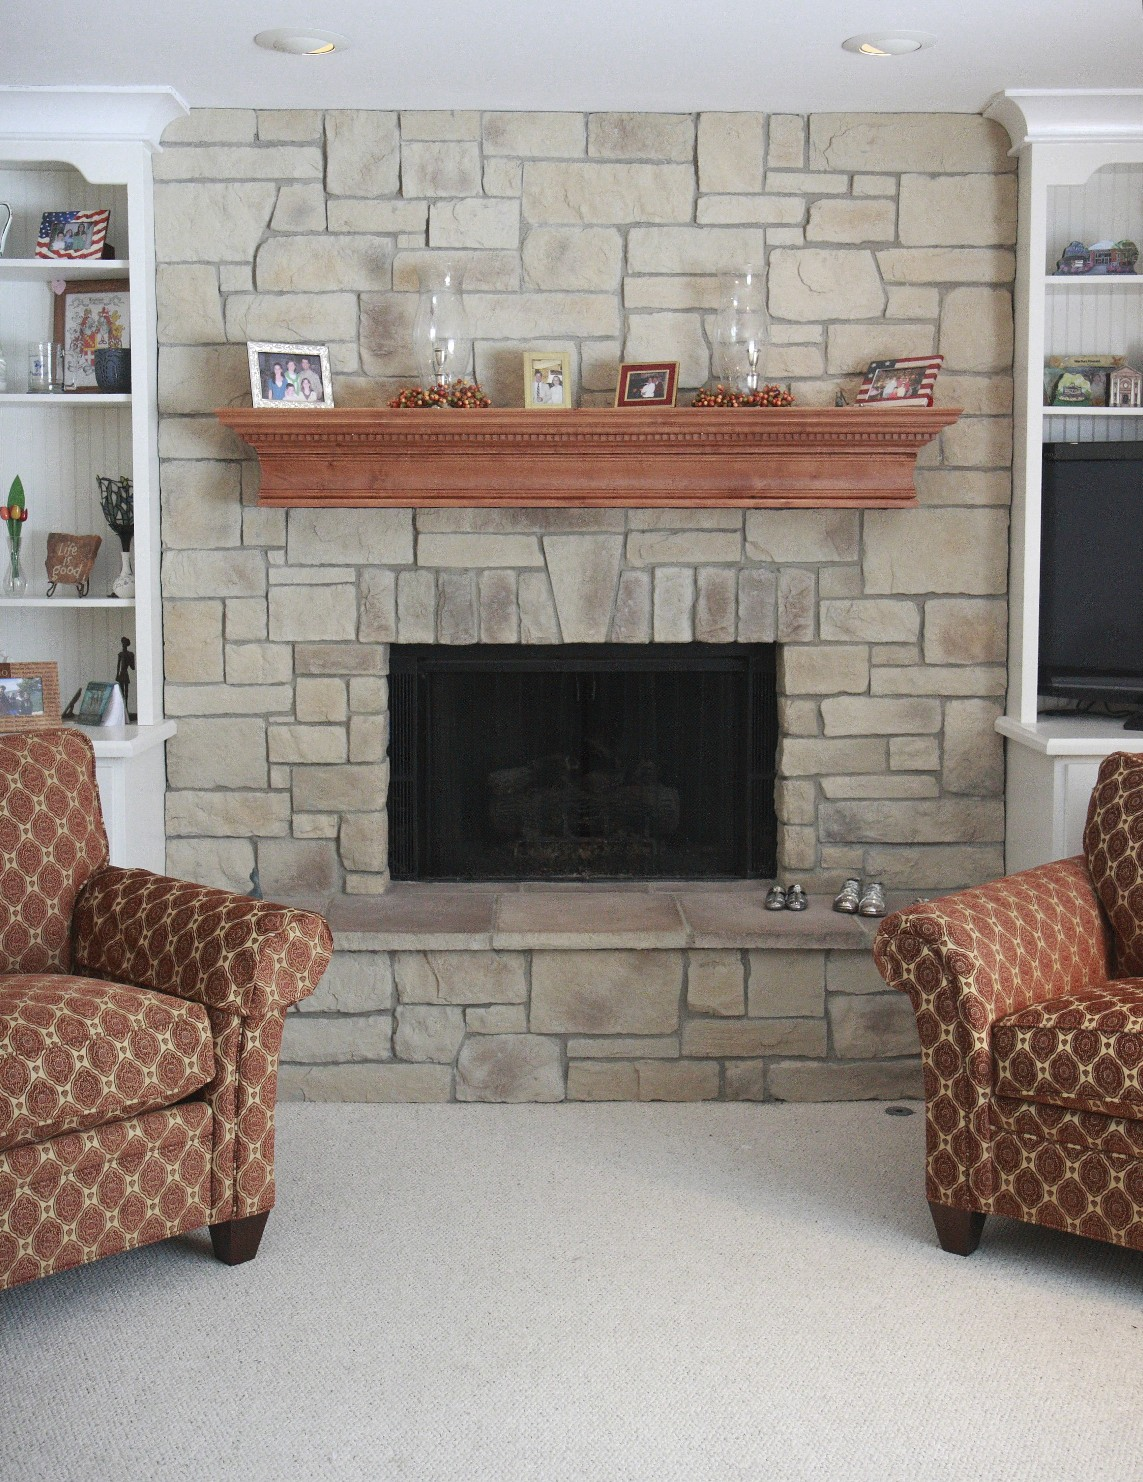 North star stone stone fireplaces stone exteriors for Stones for fireplaces